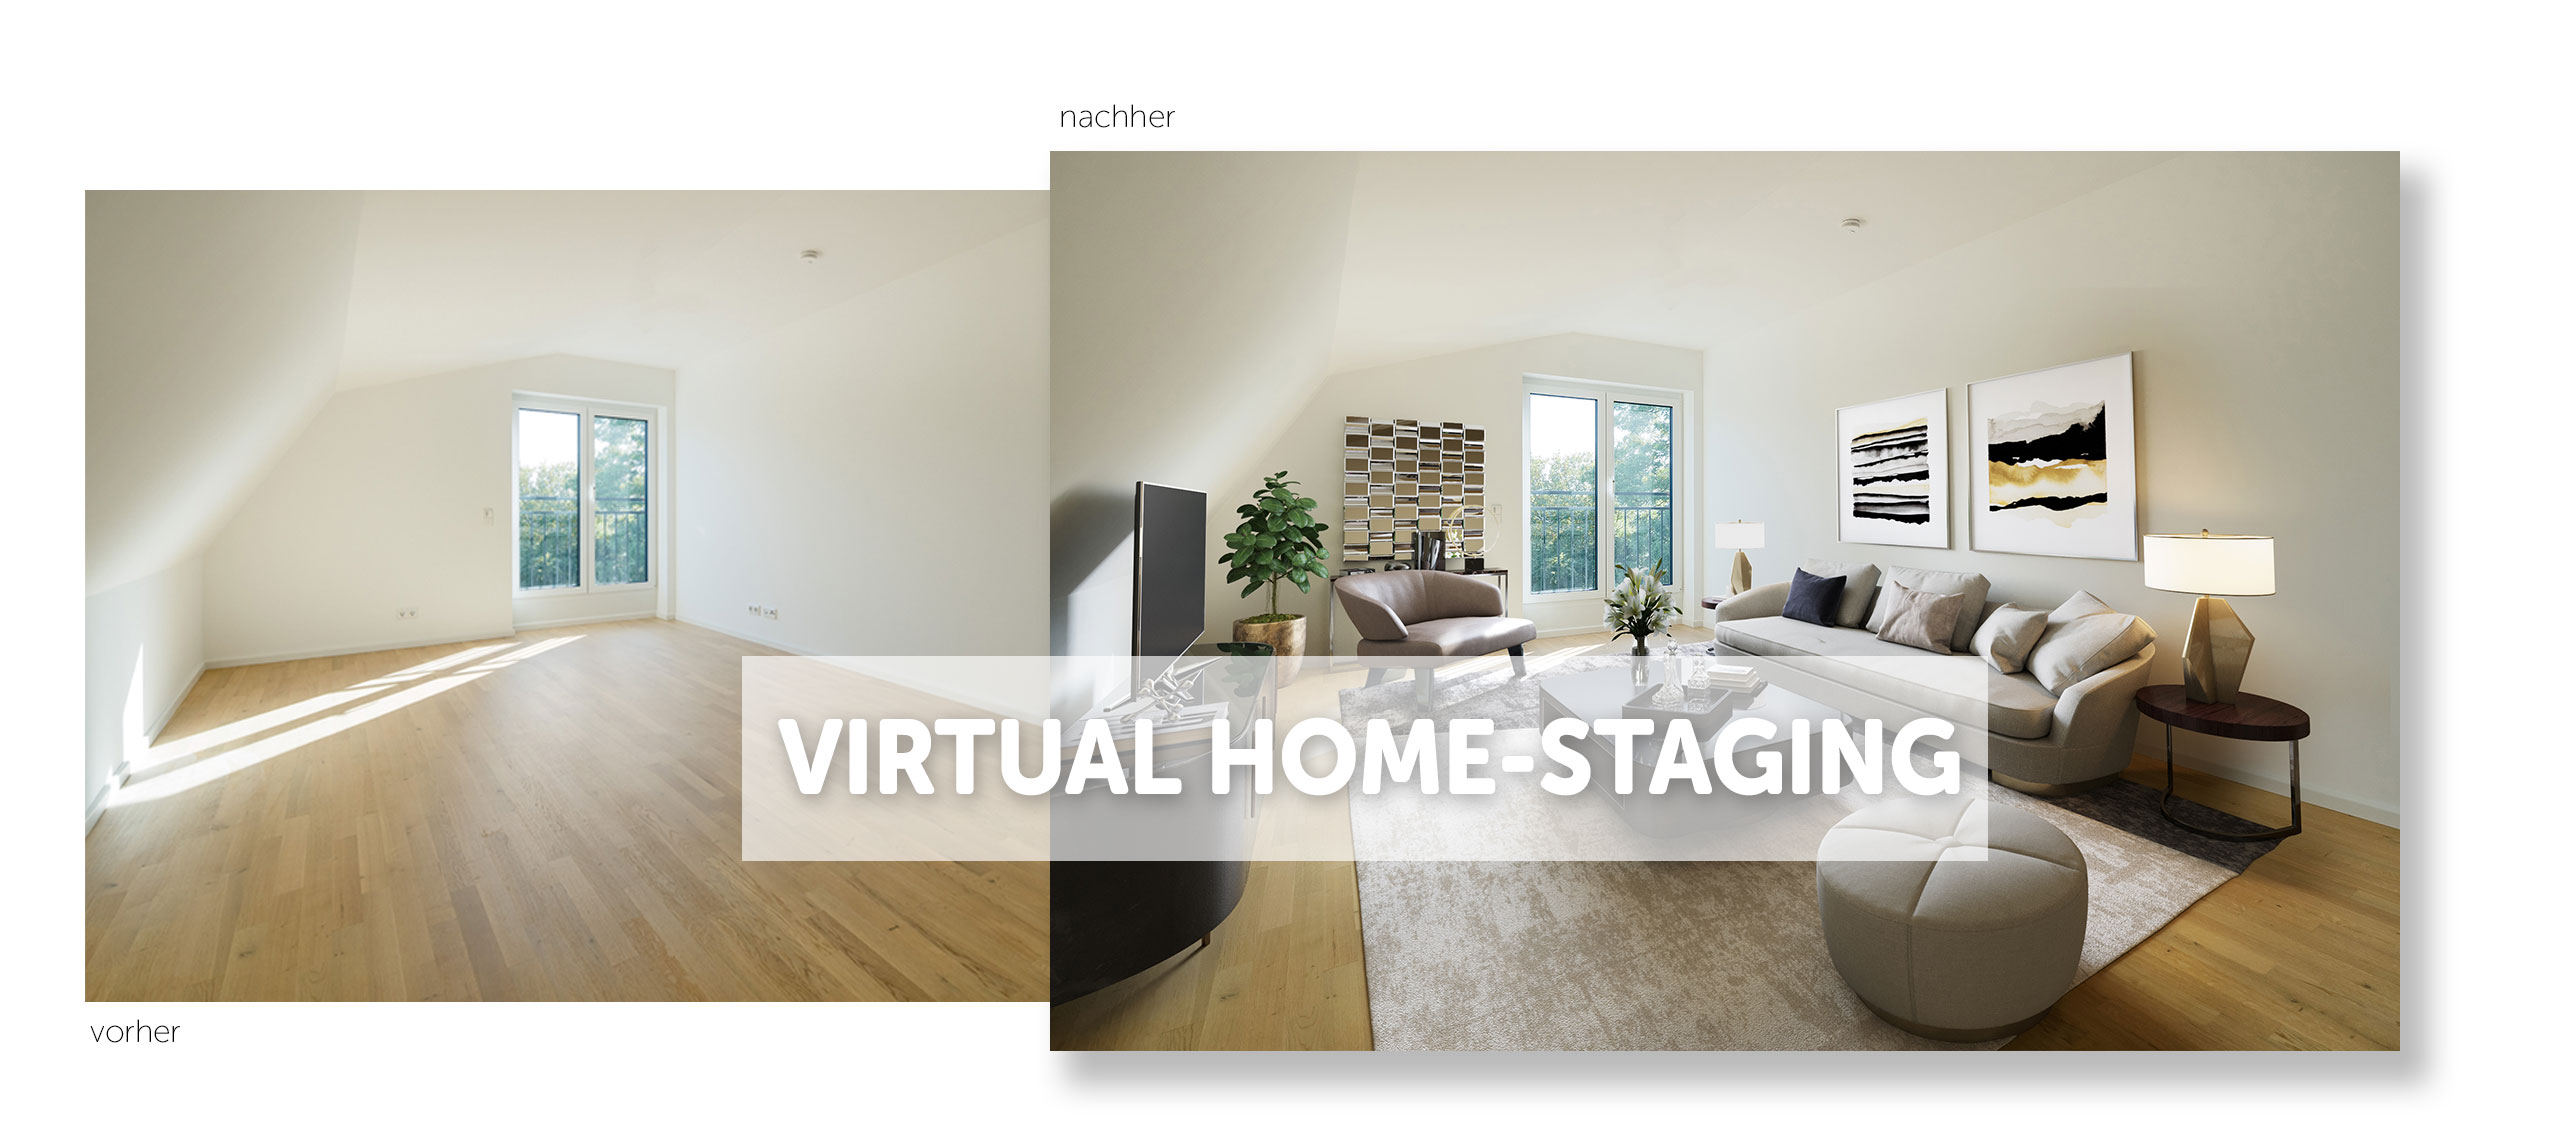 Virtual Home-Staging